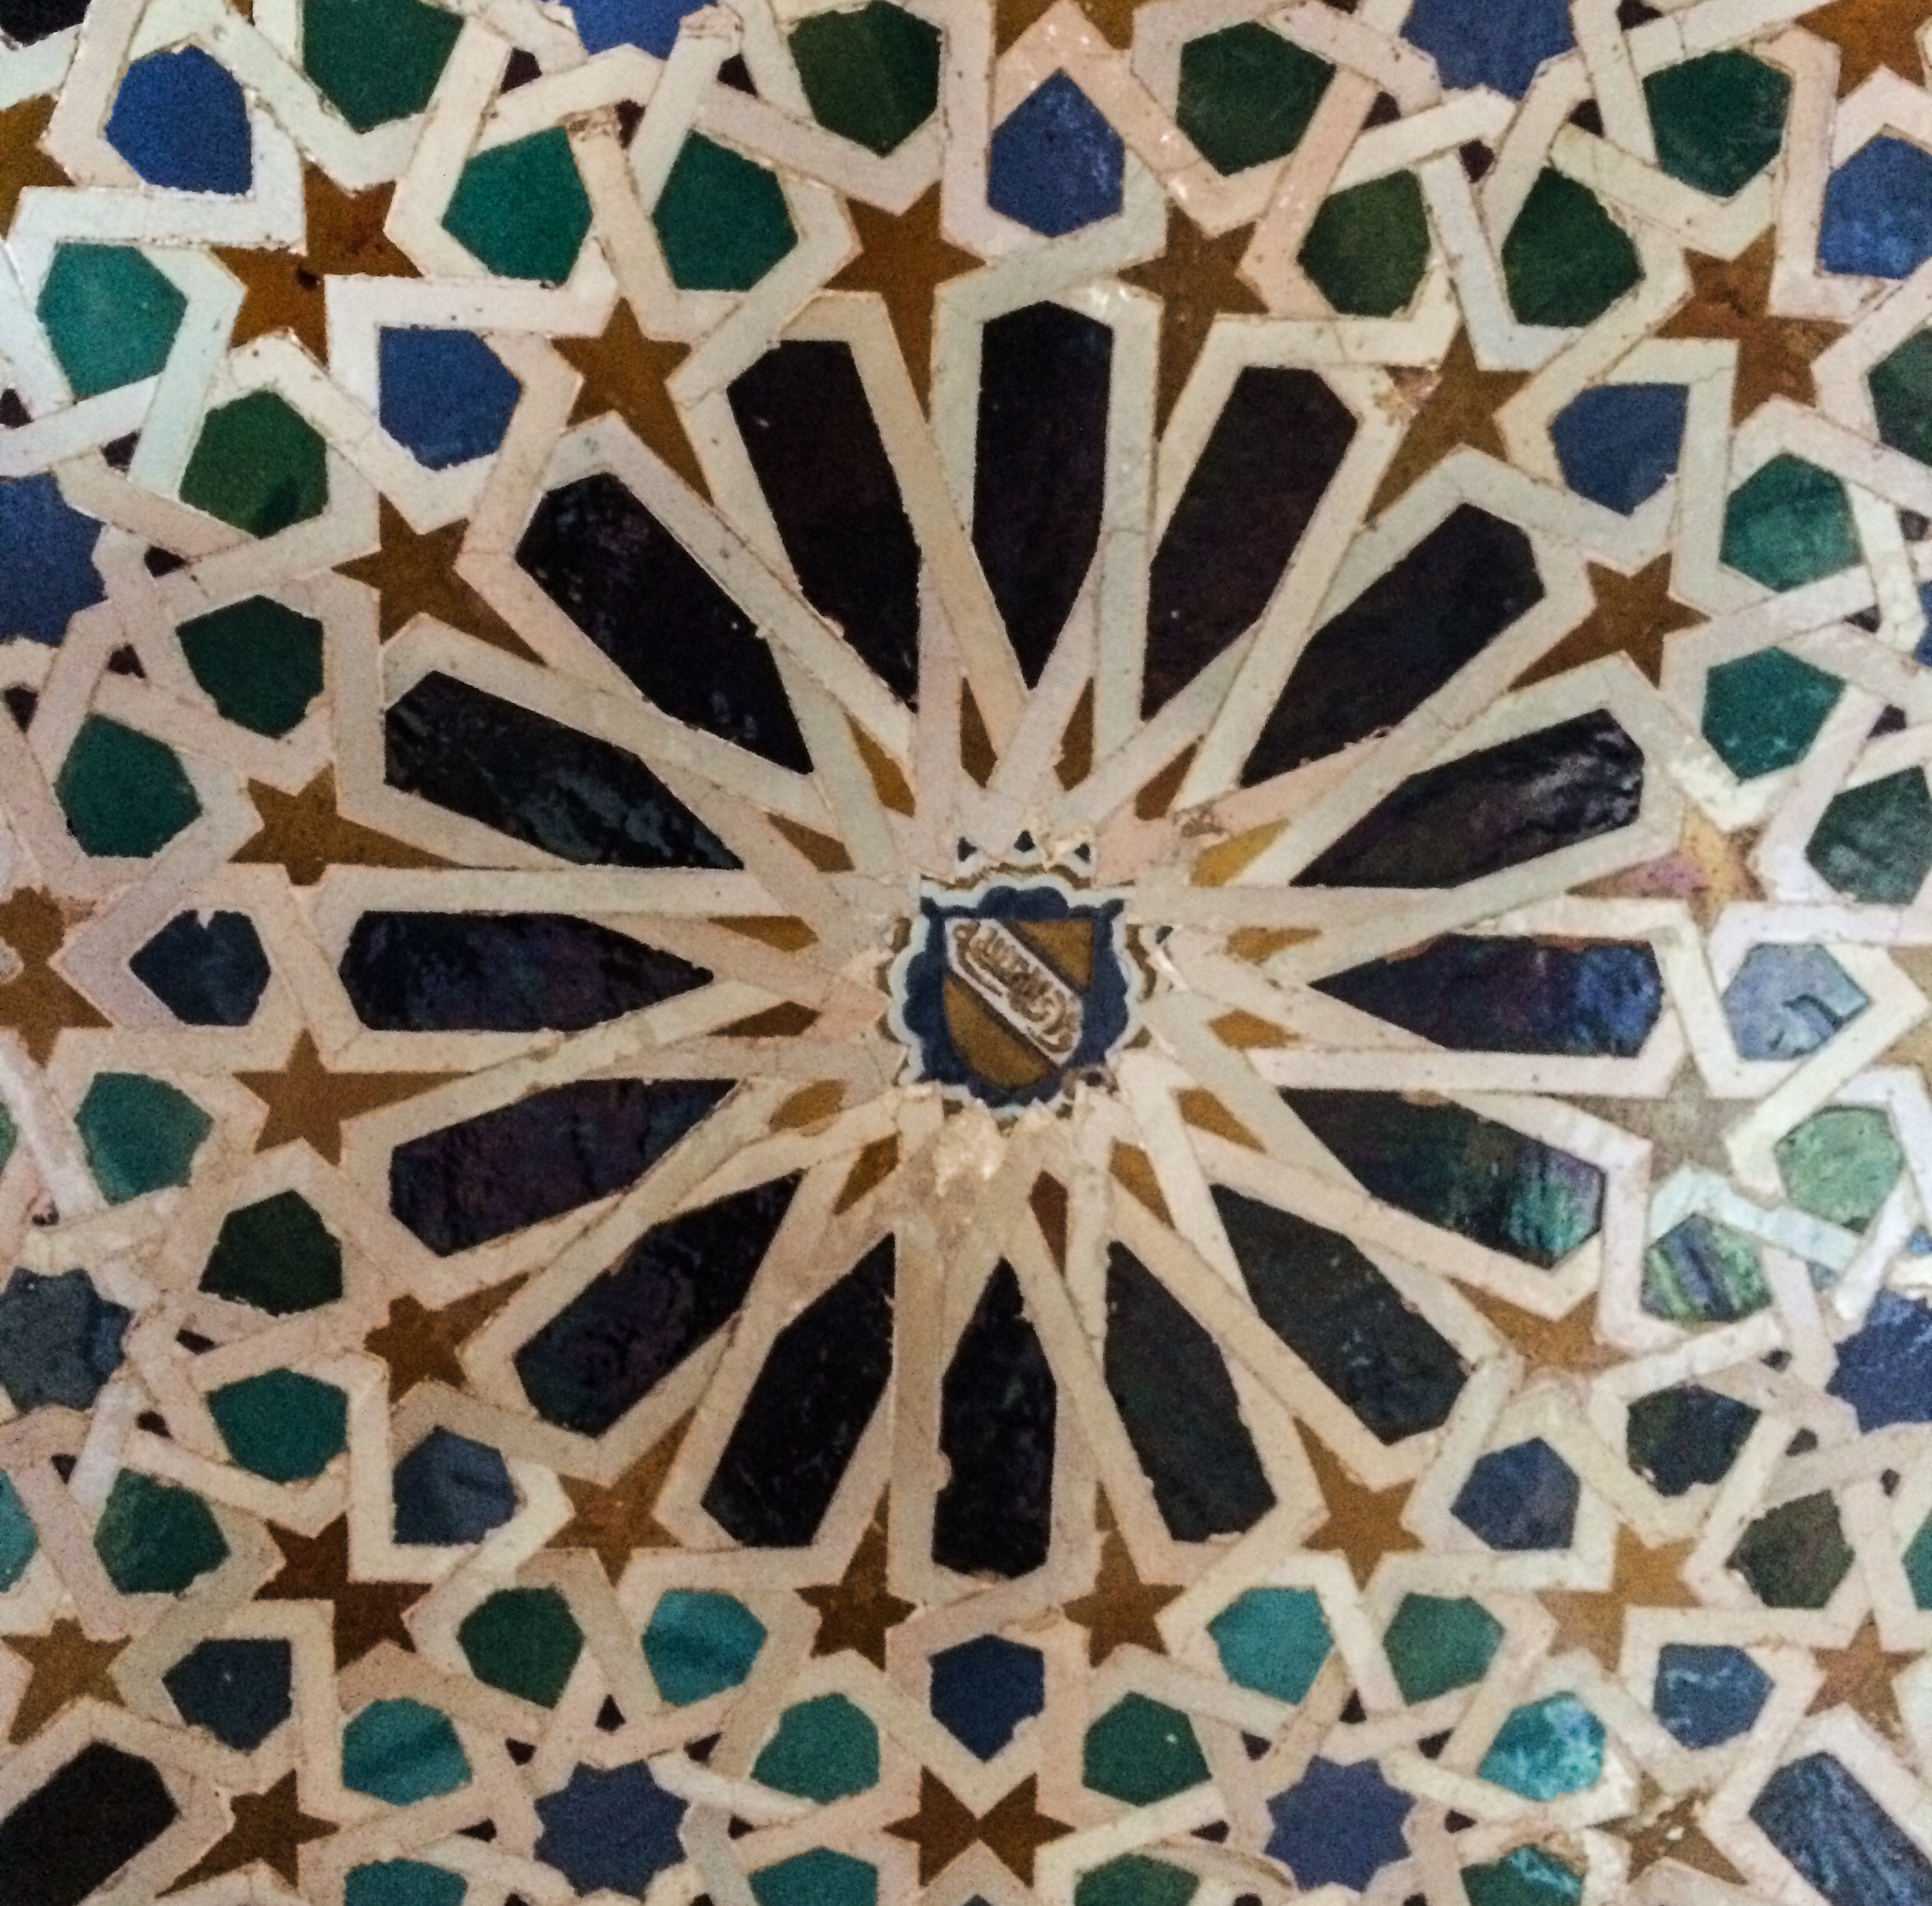 Stunning plaster work in the Alhambra palace in Granada, Spain. Dawn Page / CoastsideSlacking